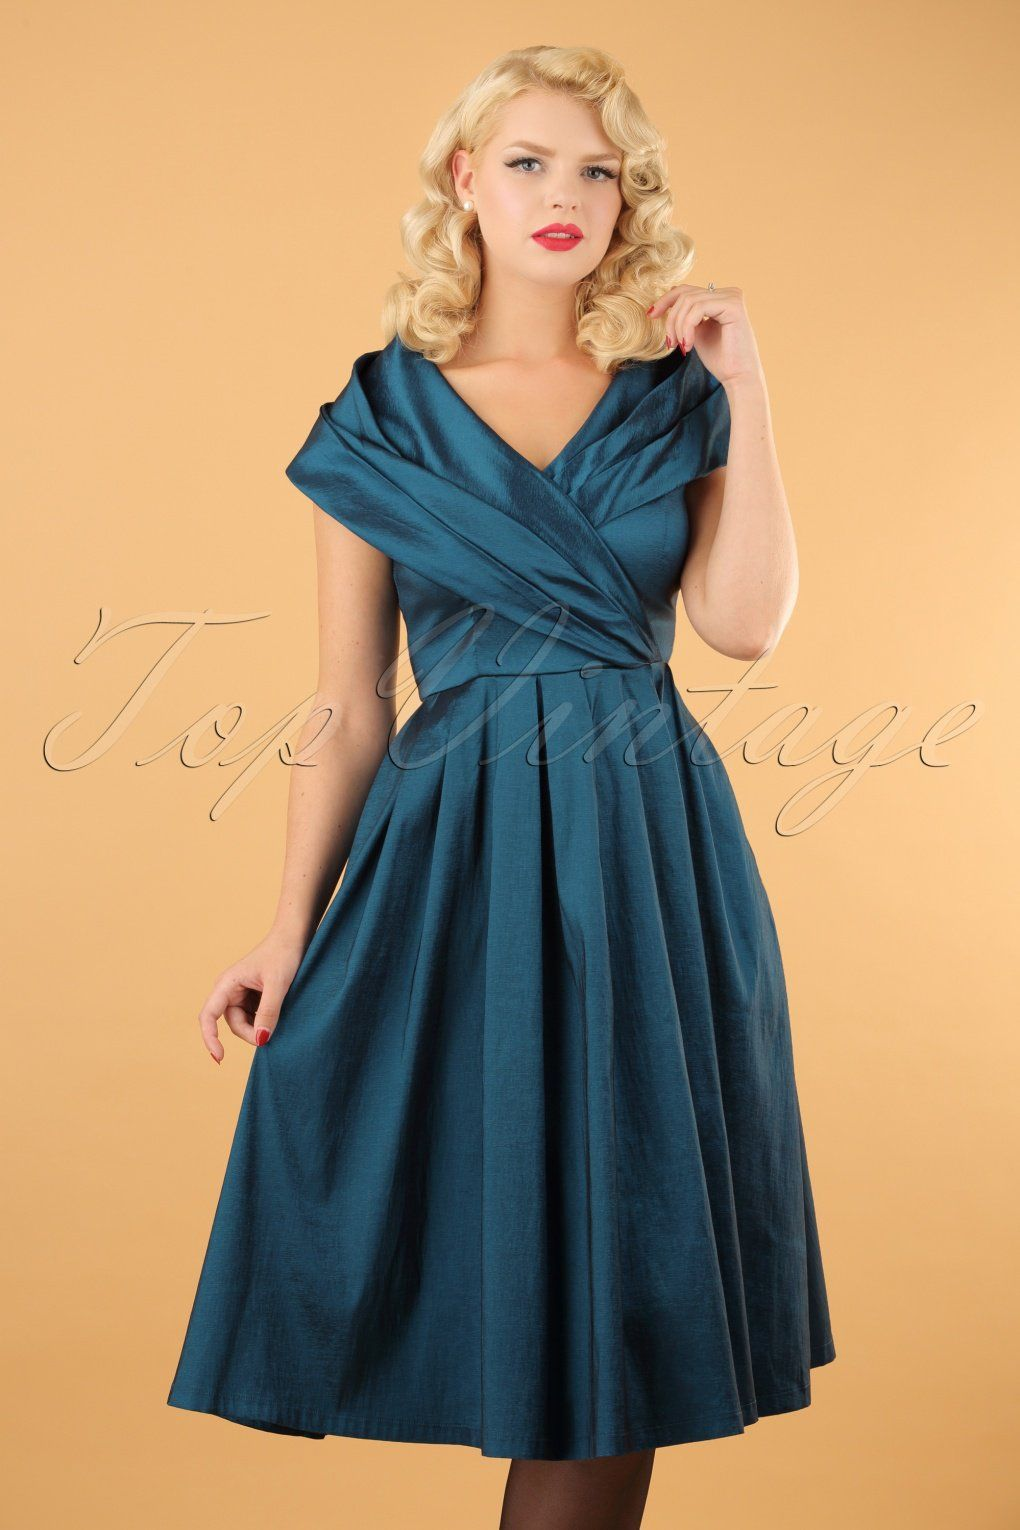 50s Amber Swing Dress in Midnight Blue | Pinterest | Auftritt ...